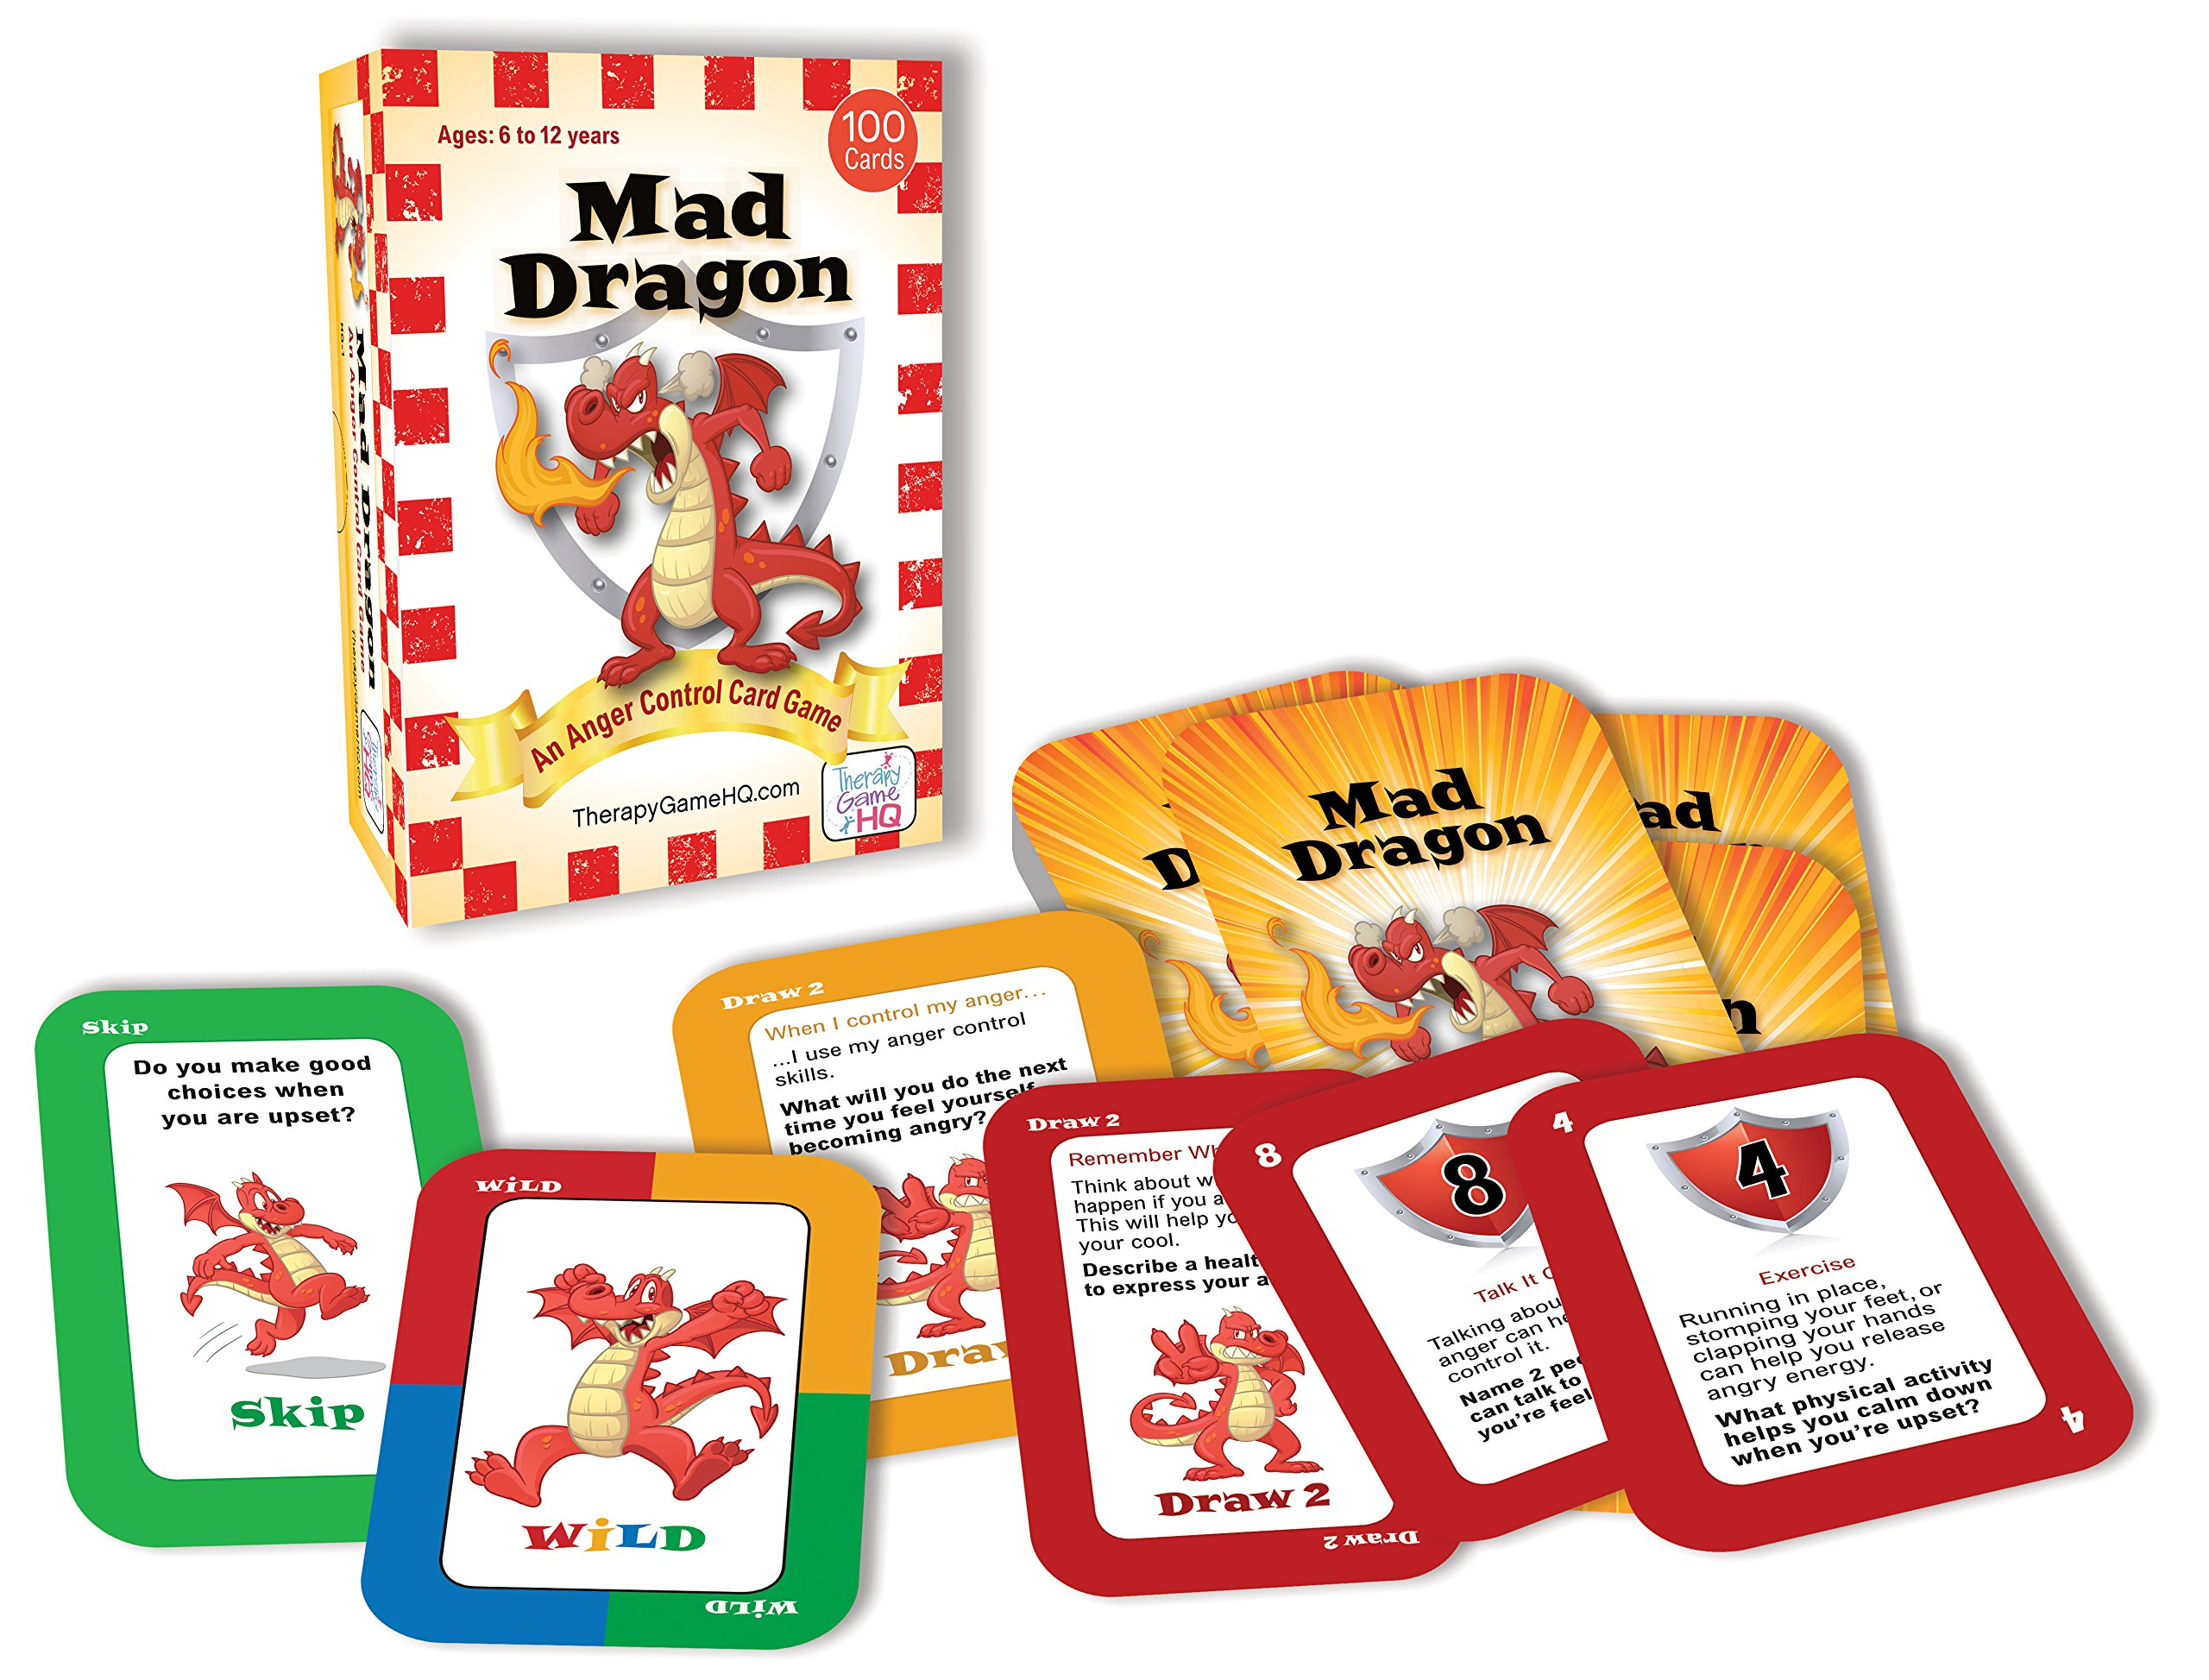 Mad Dragon: An Anger Control Card Game